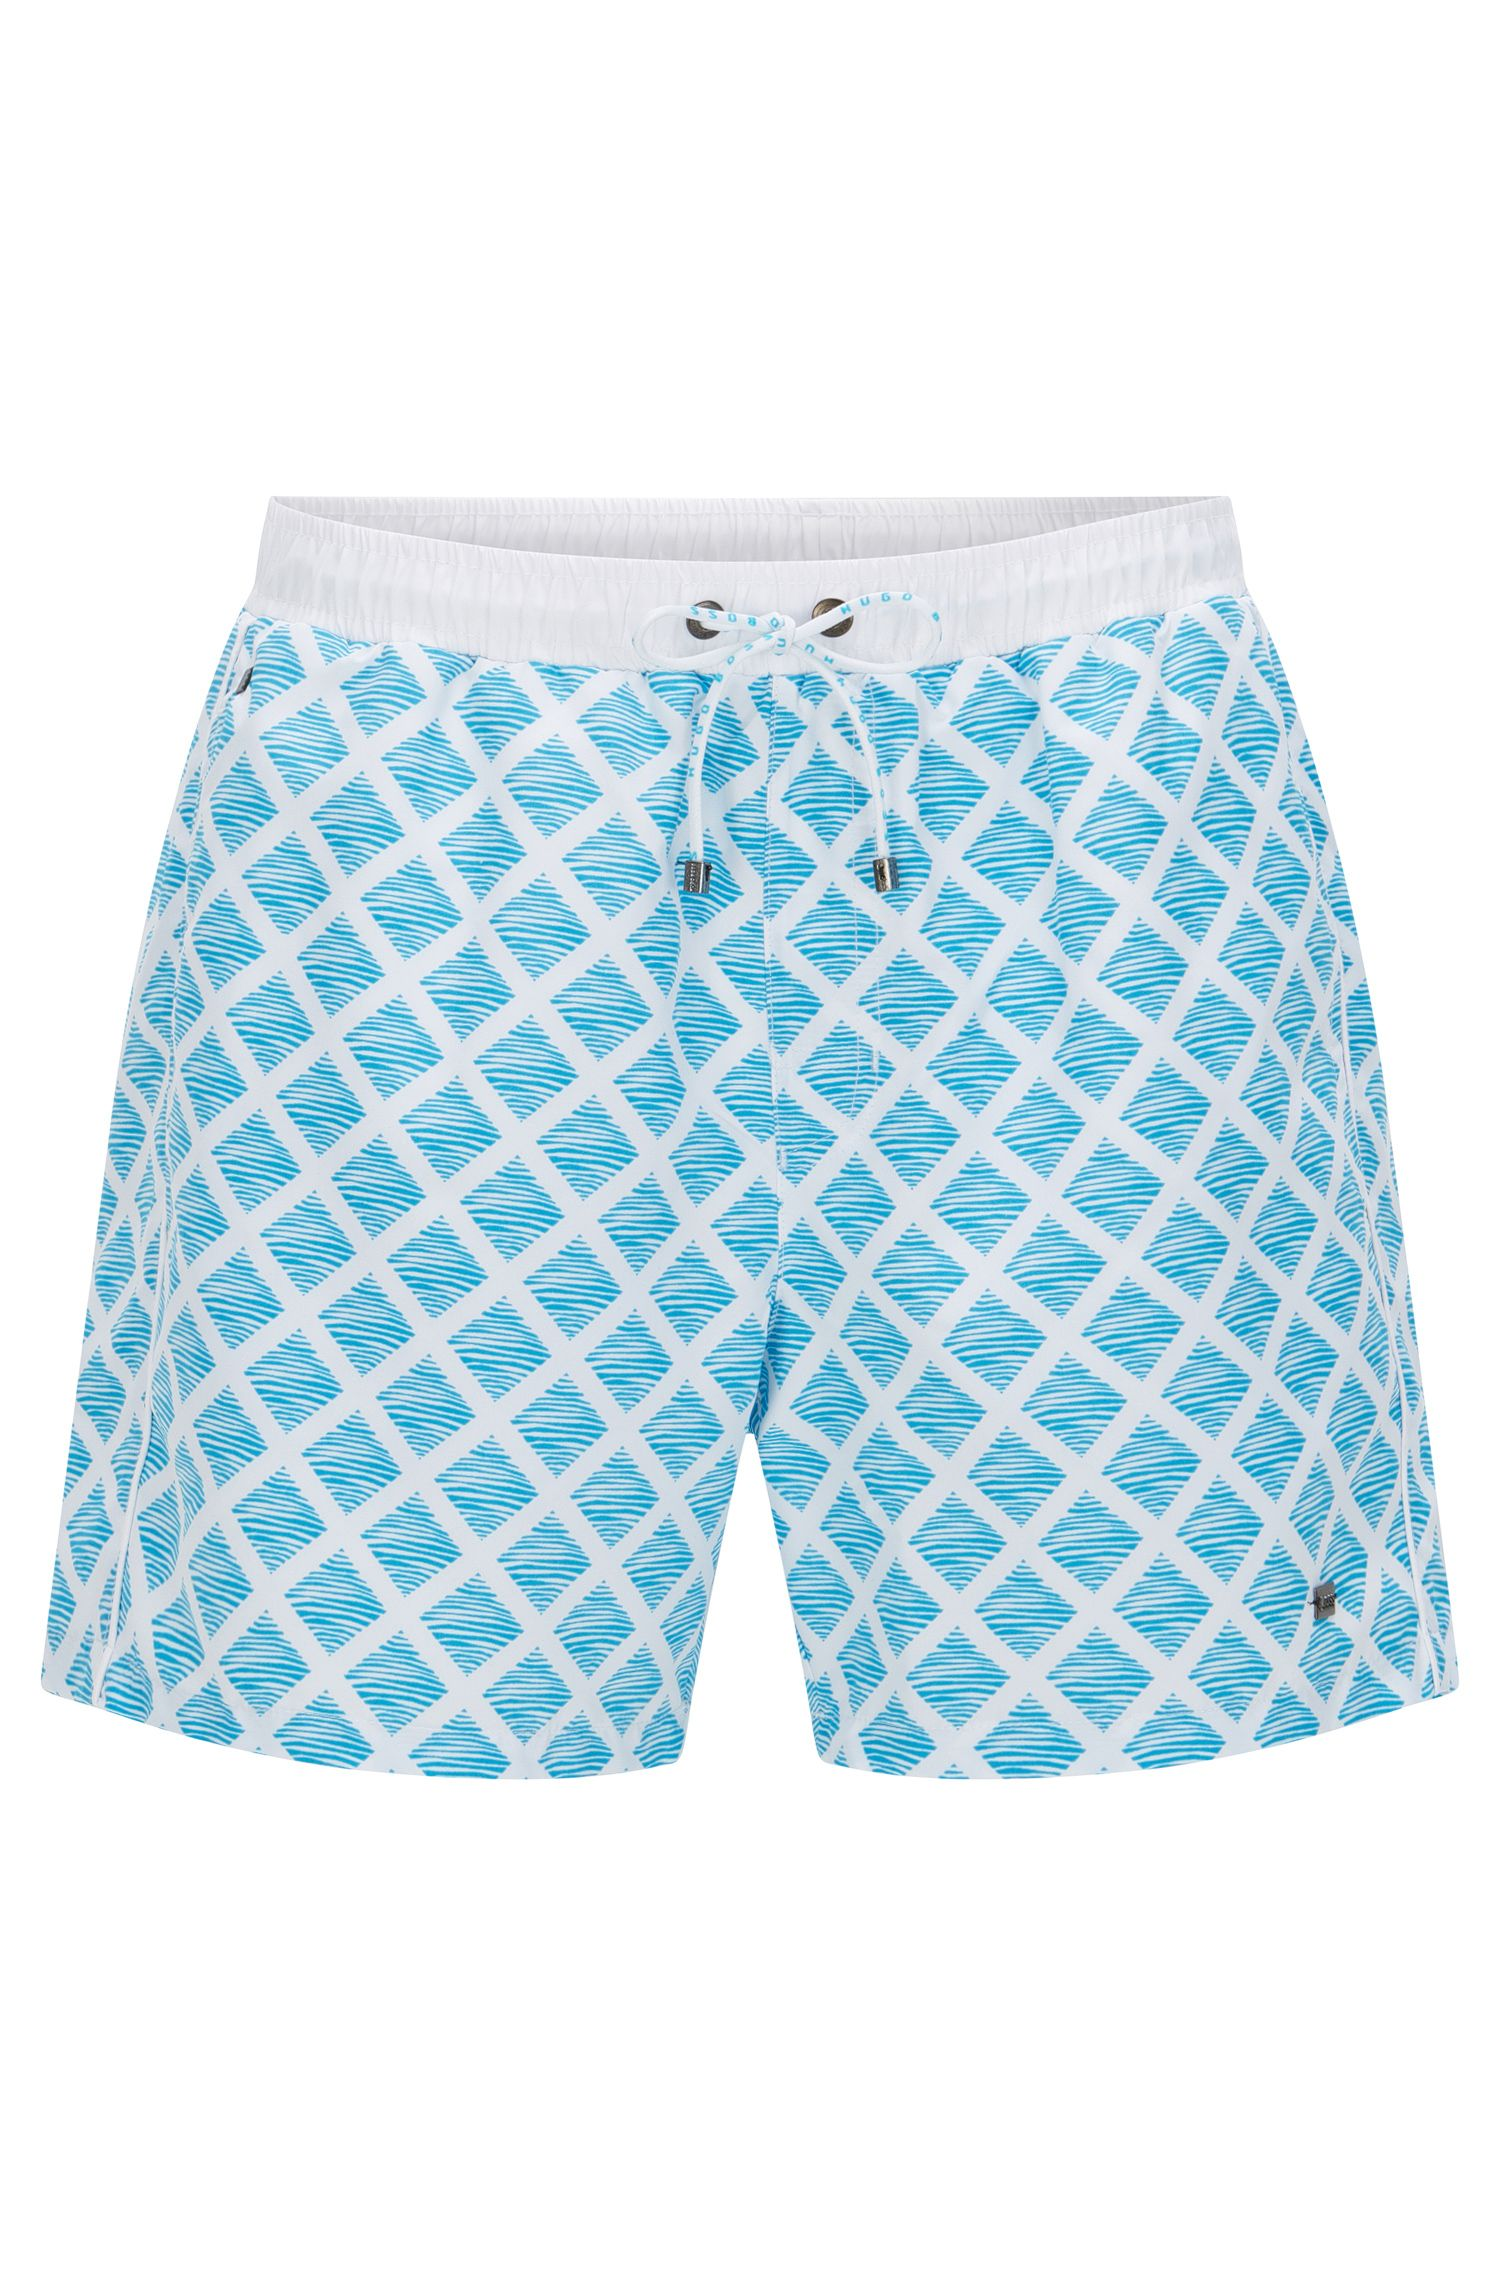 Diamond Print Quick Dry Swim Trunk | Starfish